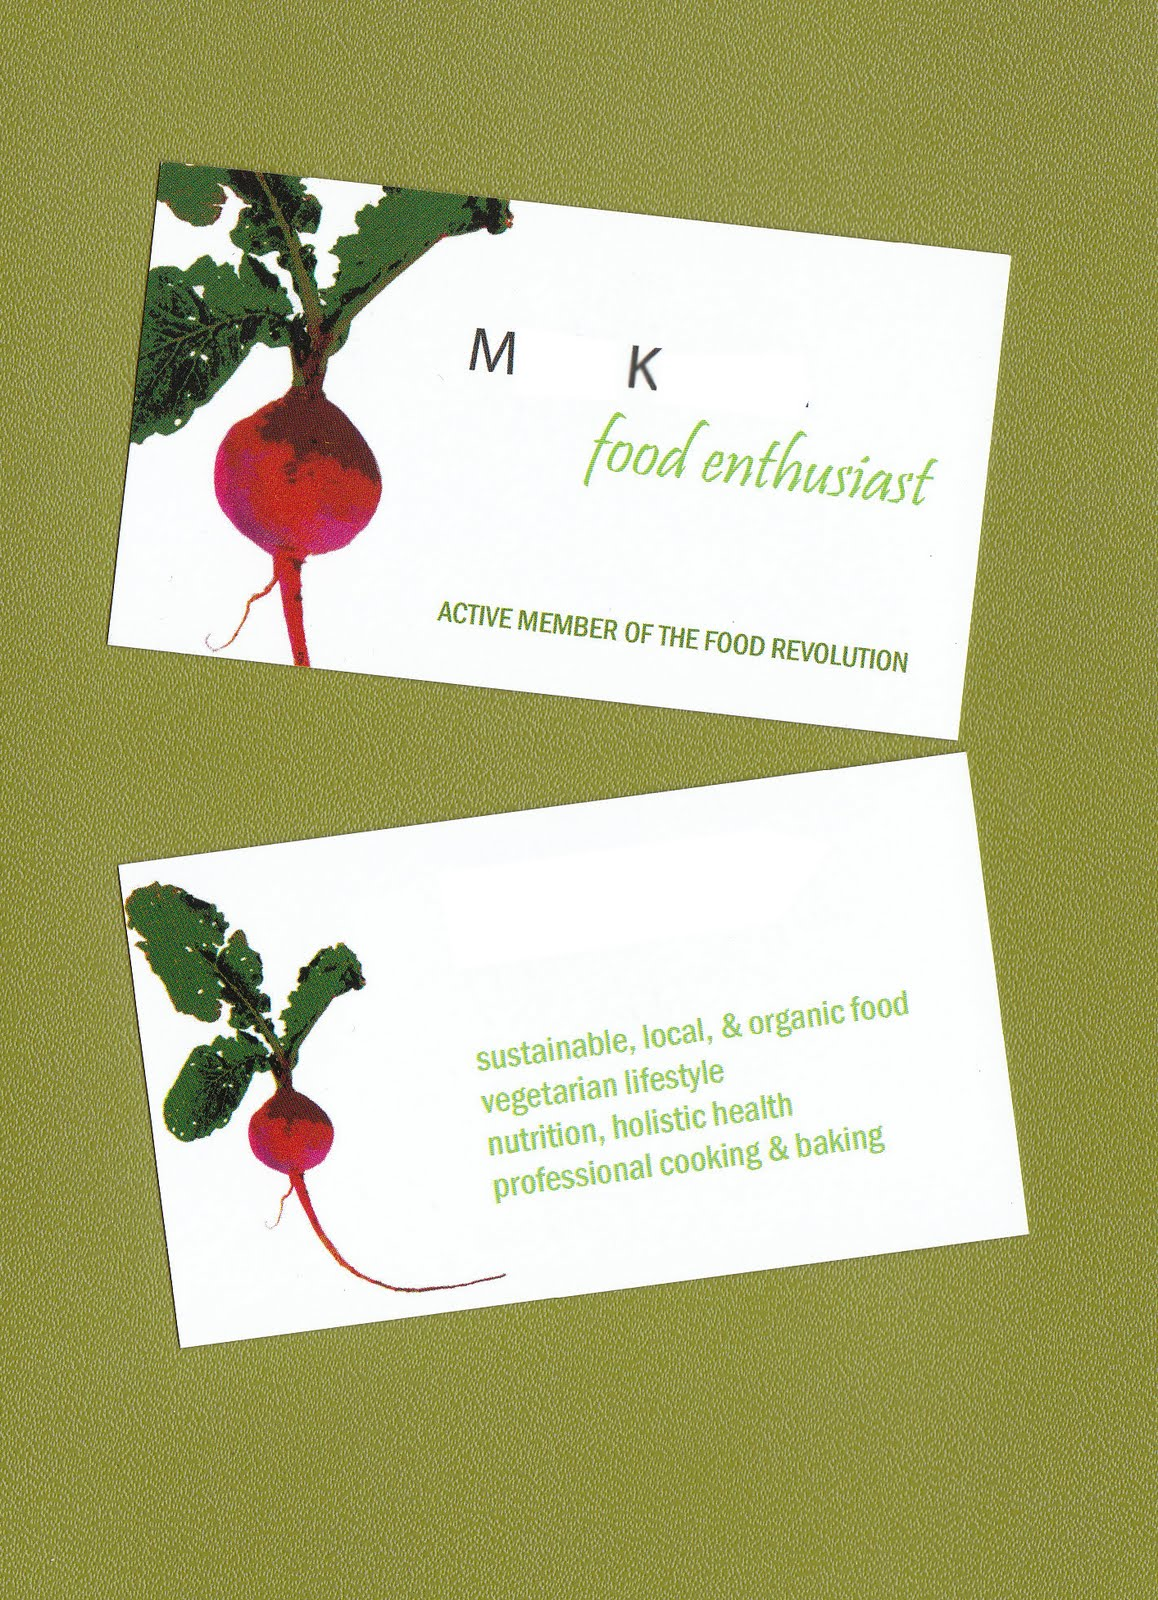 My food revolution new business cards my new business cards arrived i am super proud of my radish logo custom designed by my own personal graphic artist and architectural expert colourmoves